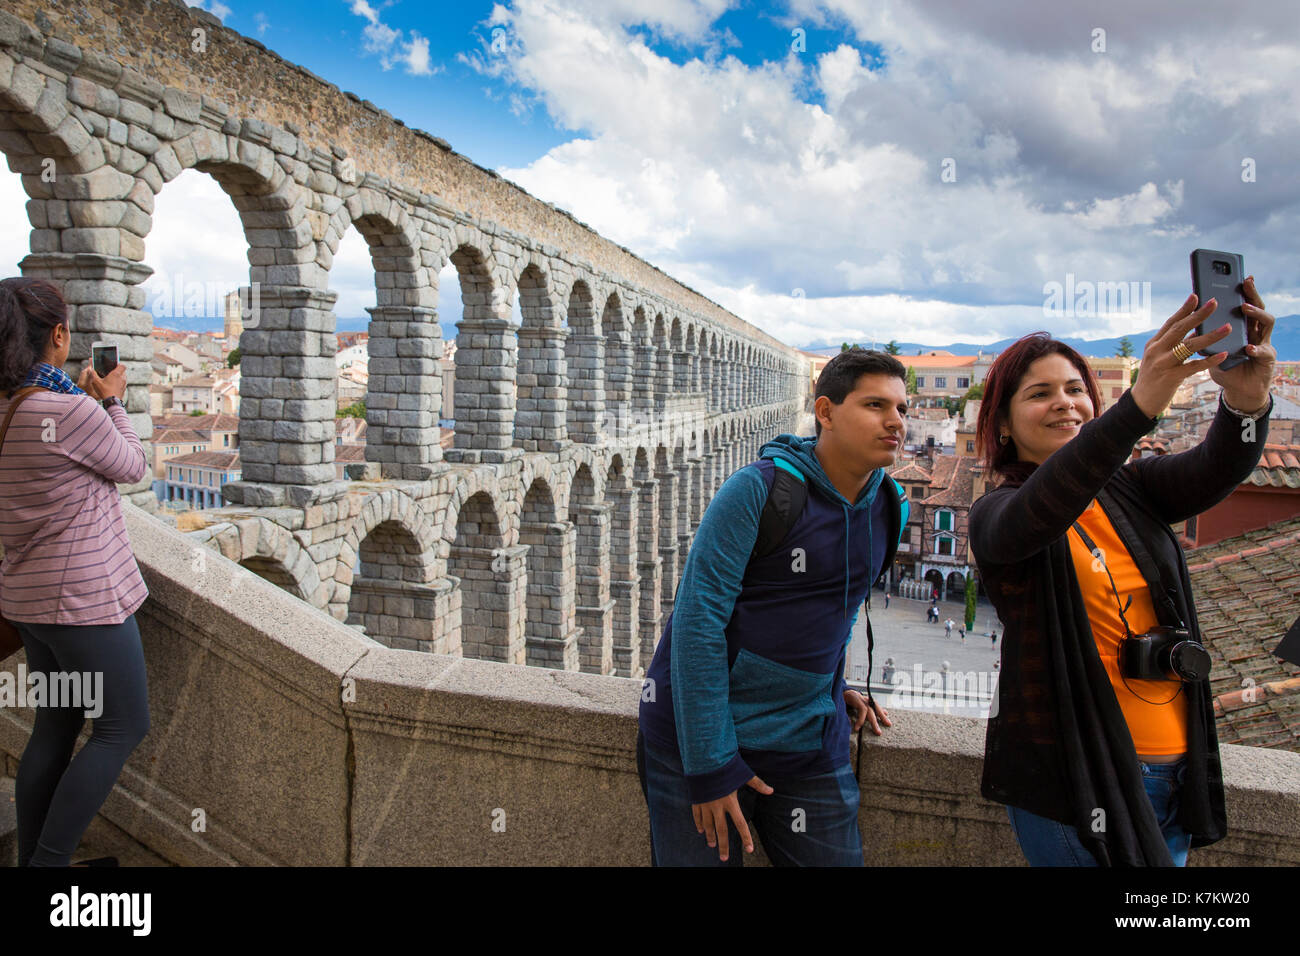 Tourists taking selfie photographs with smartphone at famous spectacular Roman aqueduct, Segovia, Spain - Stock Image